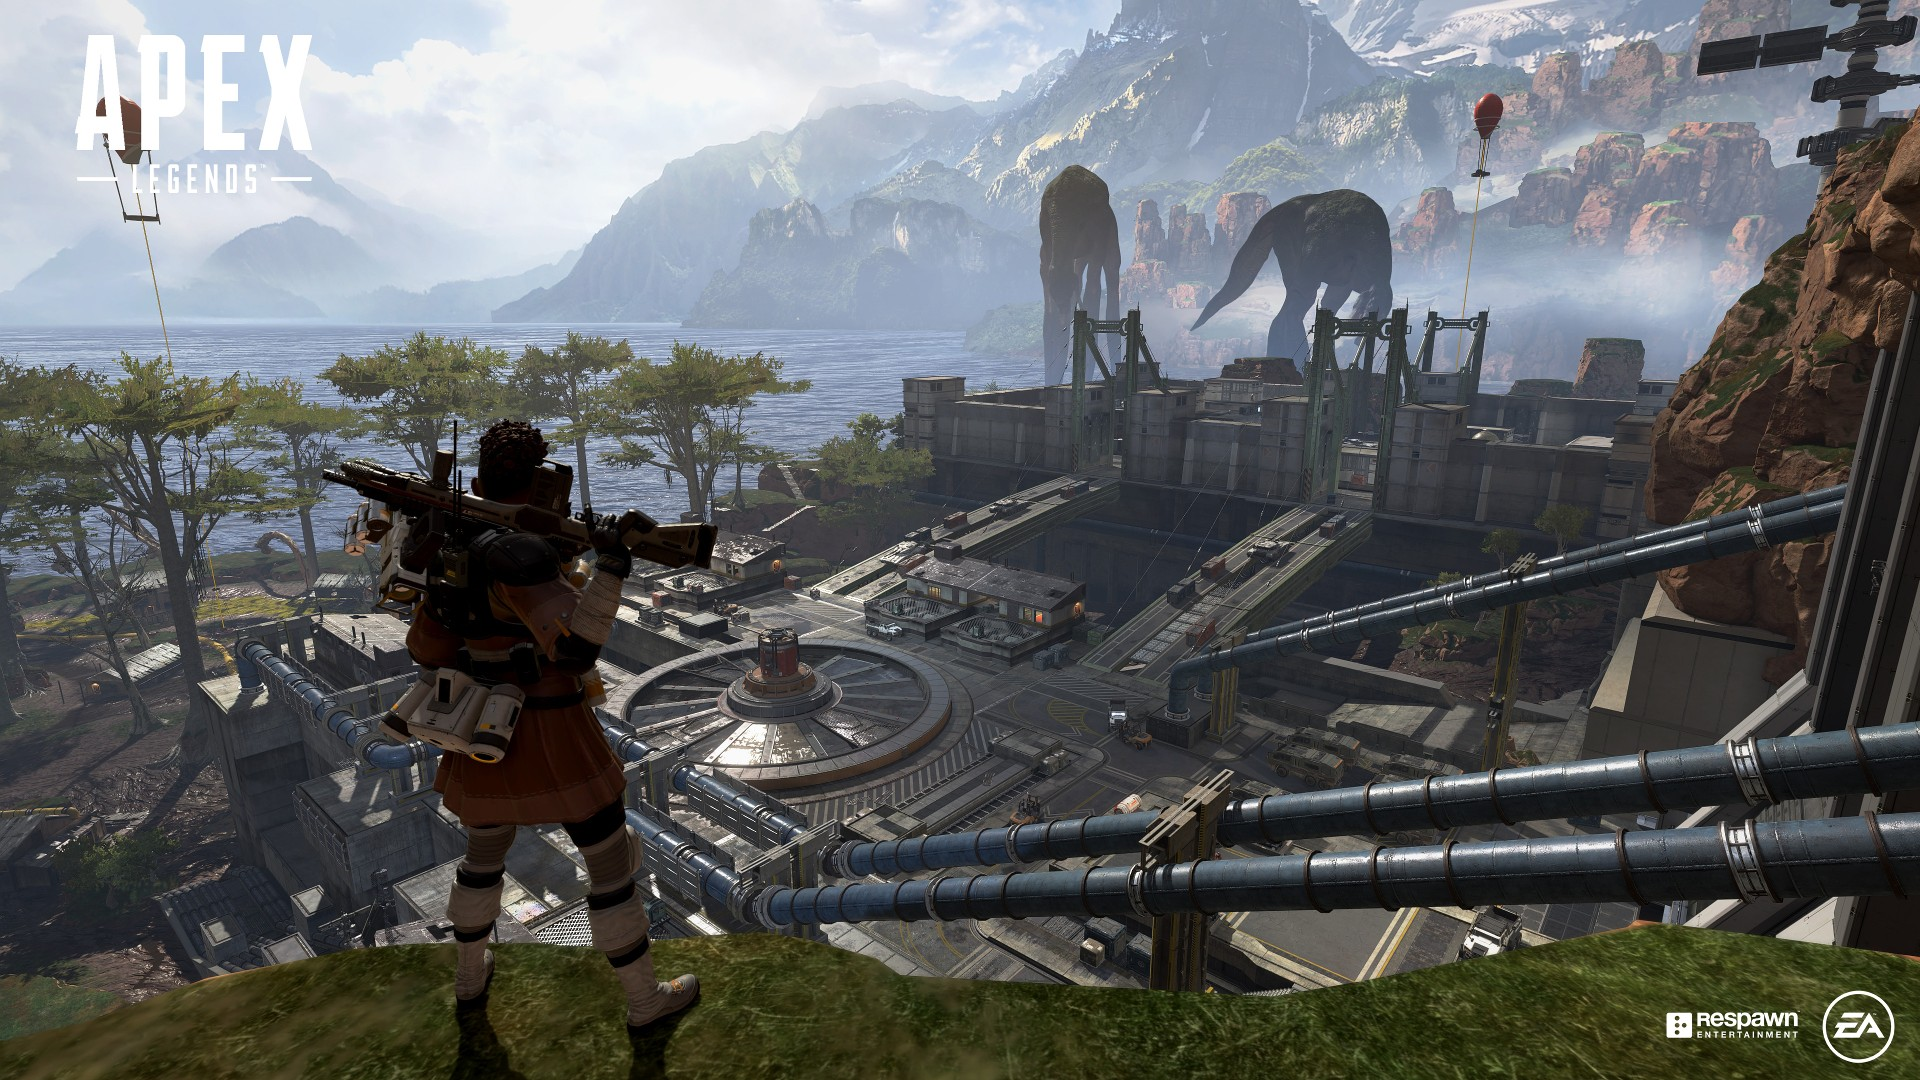 Apex Legends, the new battle royale from the Titanfall team, is free to play and out now screenshot